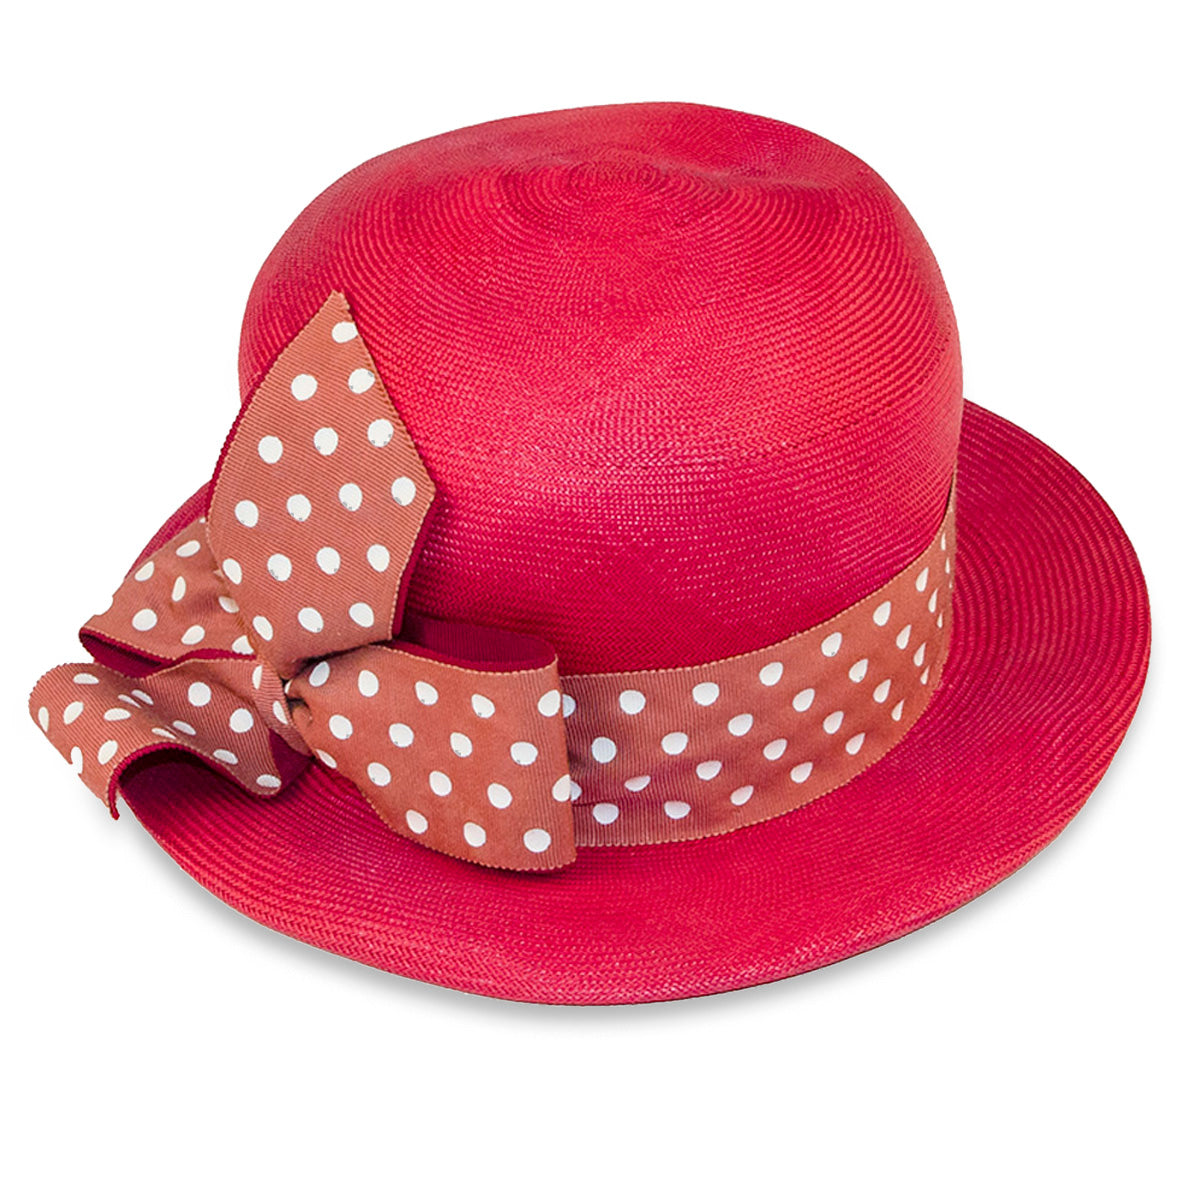 Vintage Red Straw Hat Polka Dot Hatband & Bow